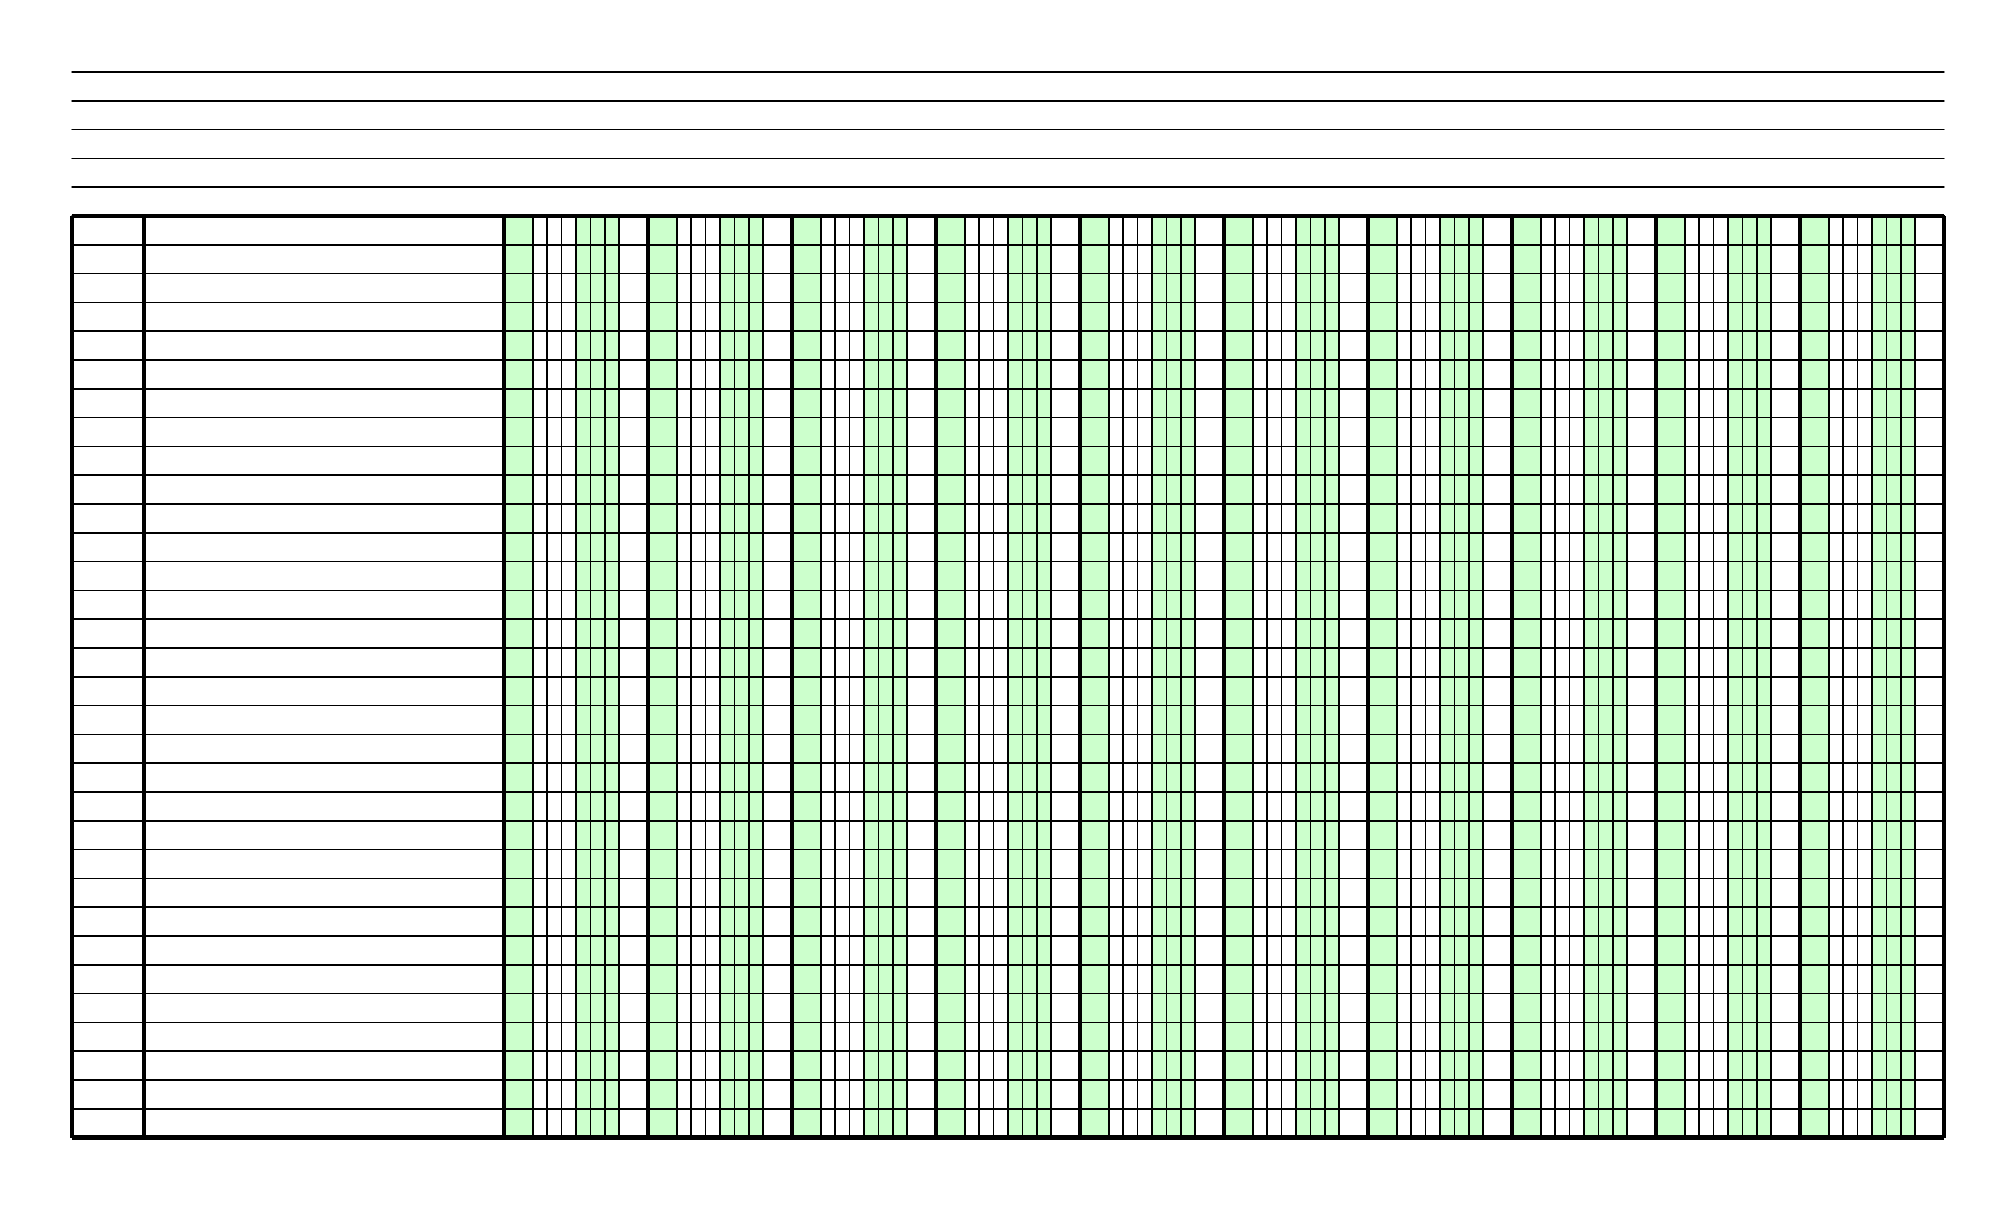 Blank Columnar Paper With Two Columns On Legal Sized Paper